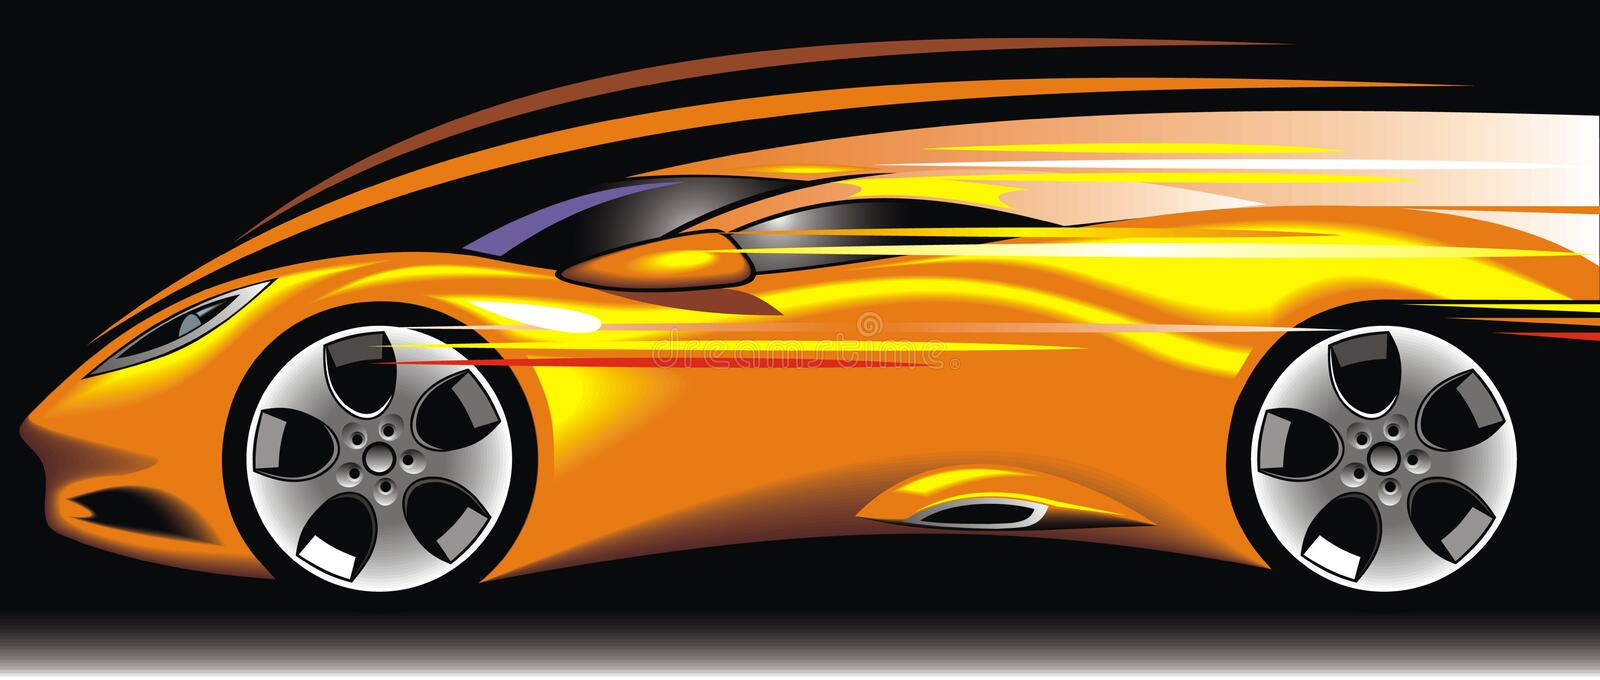 My original sport car design vector illustration